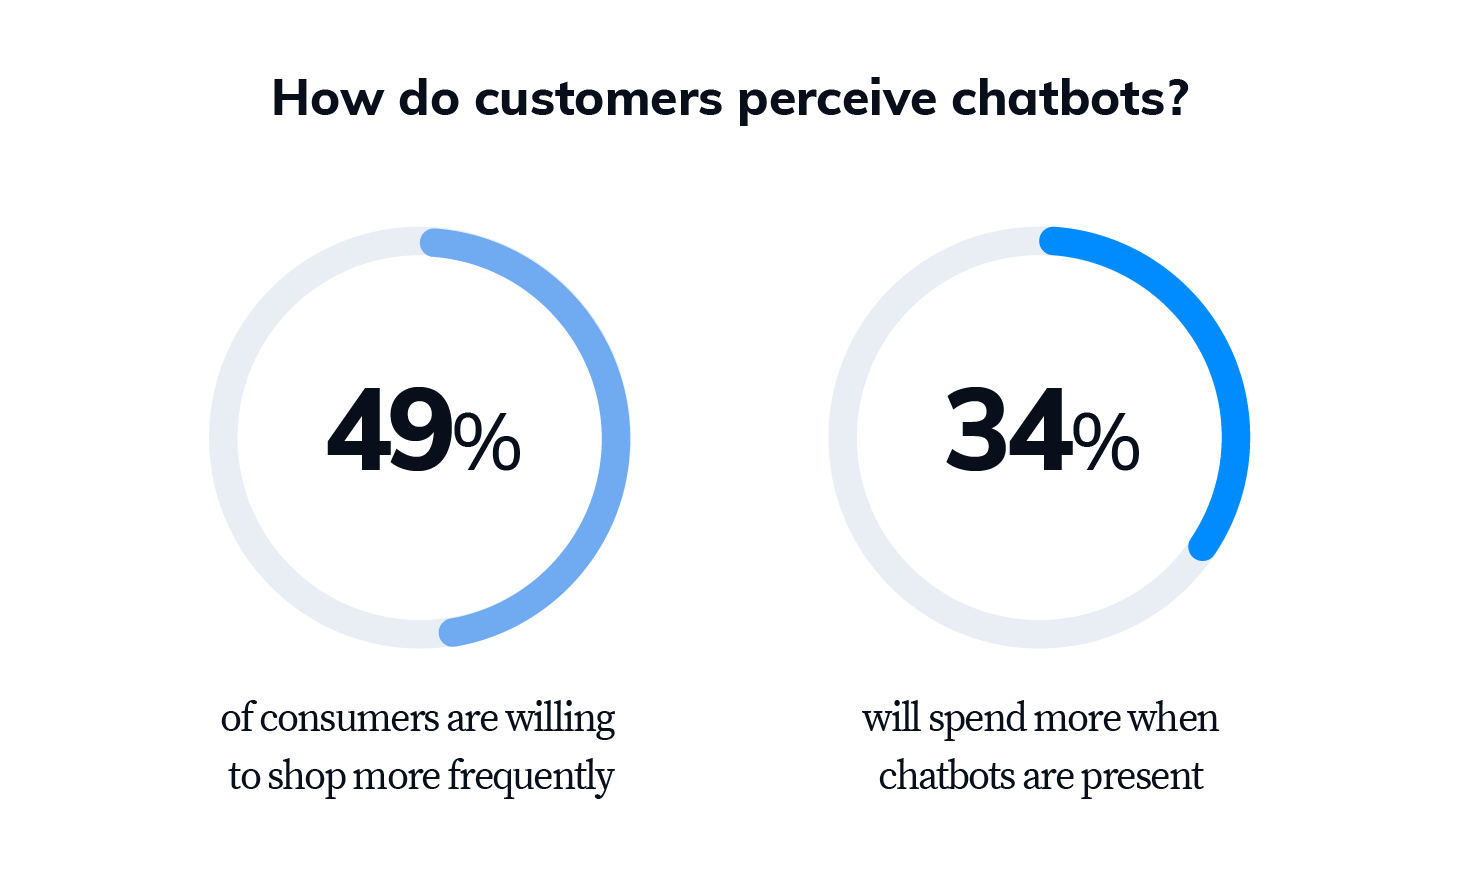 how do customers perceive chatbots